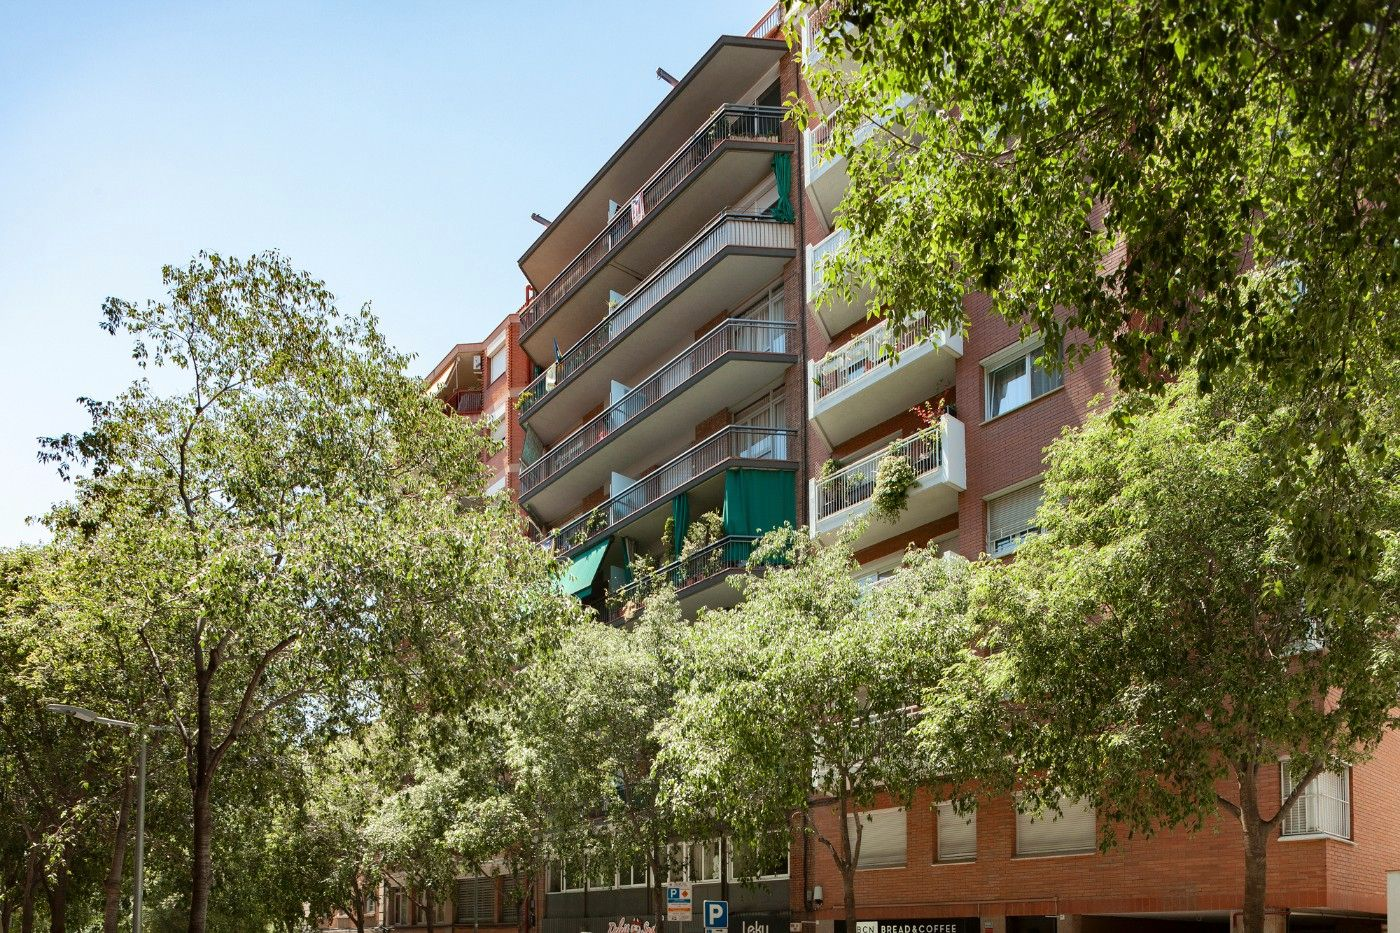 Rent Flat in Carrer joan guell, 189. Piso 4 hab junto metro les corts